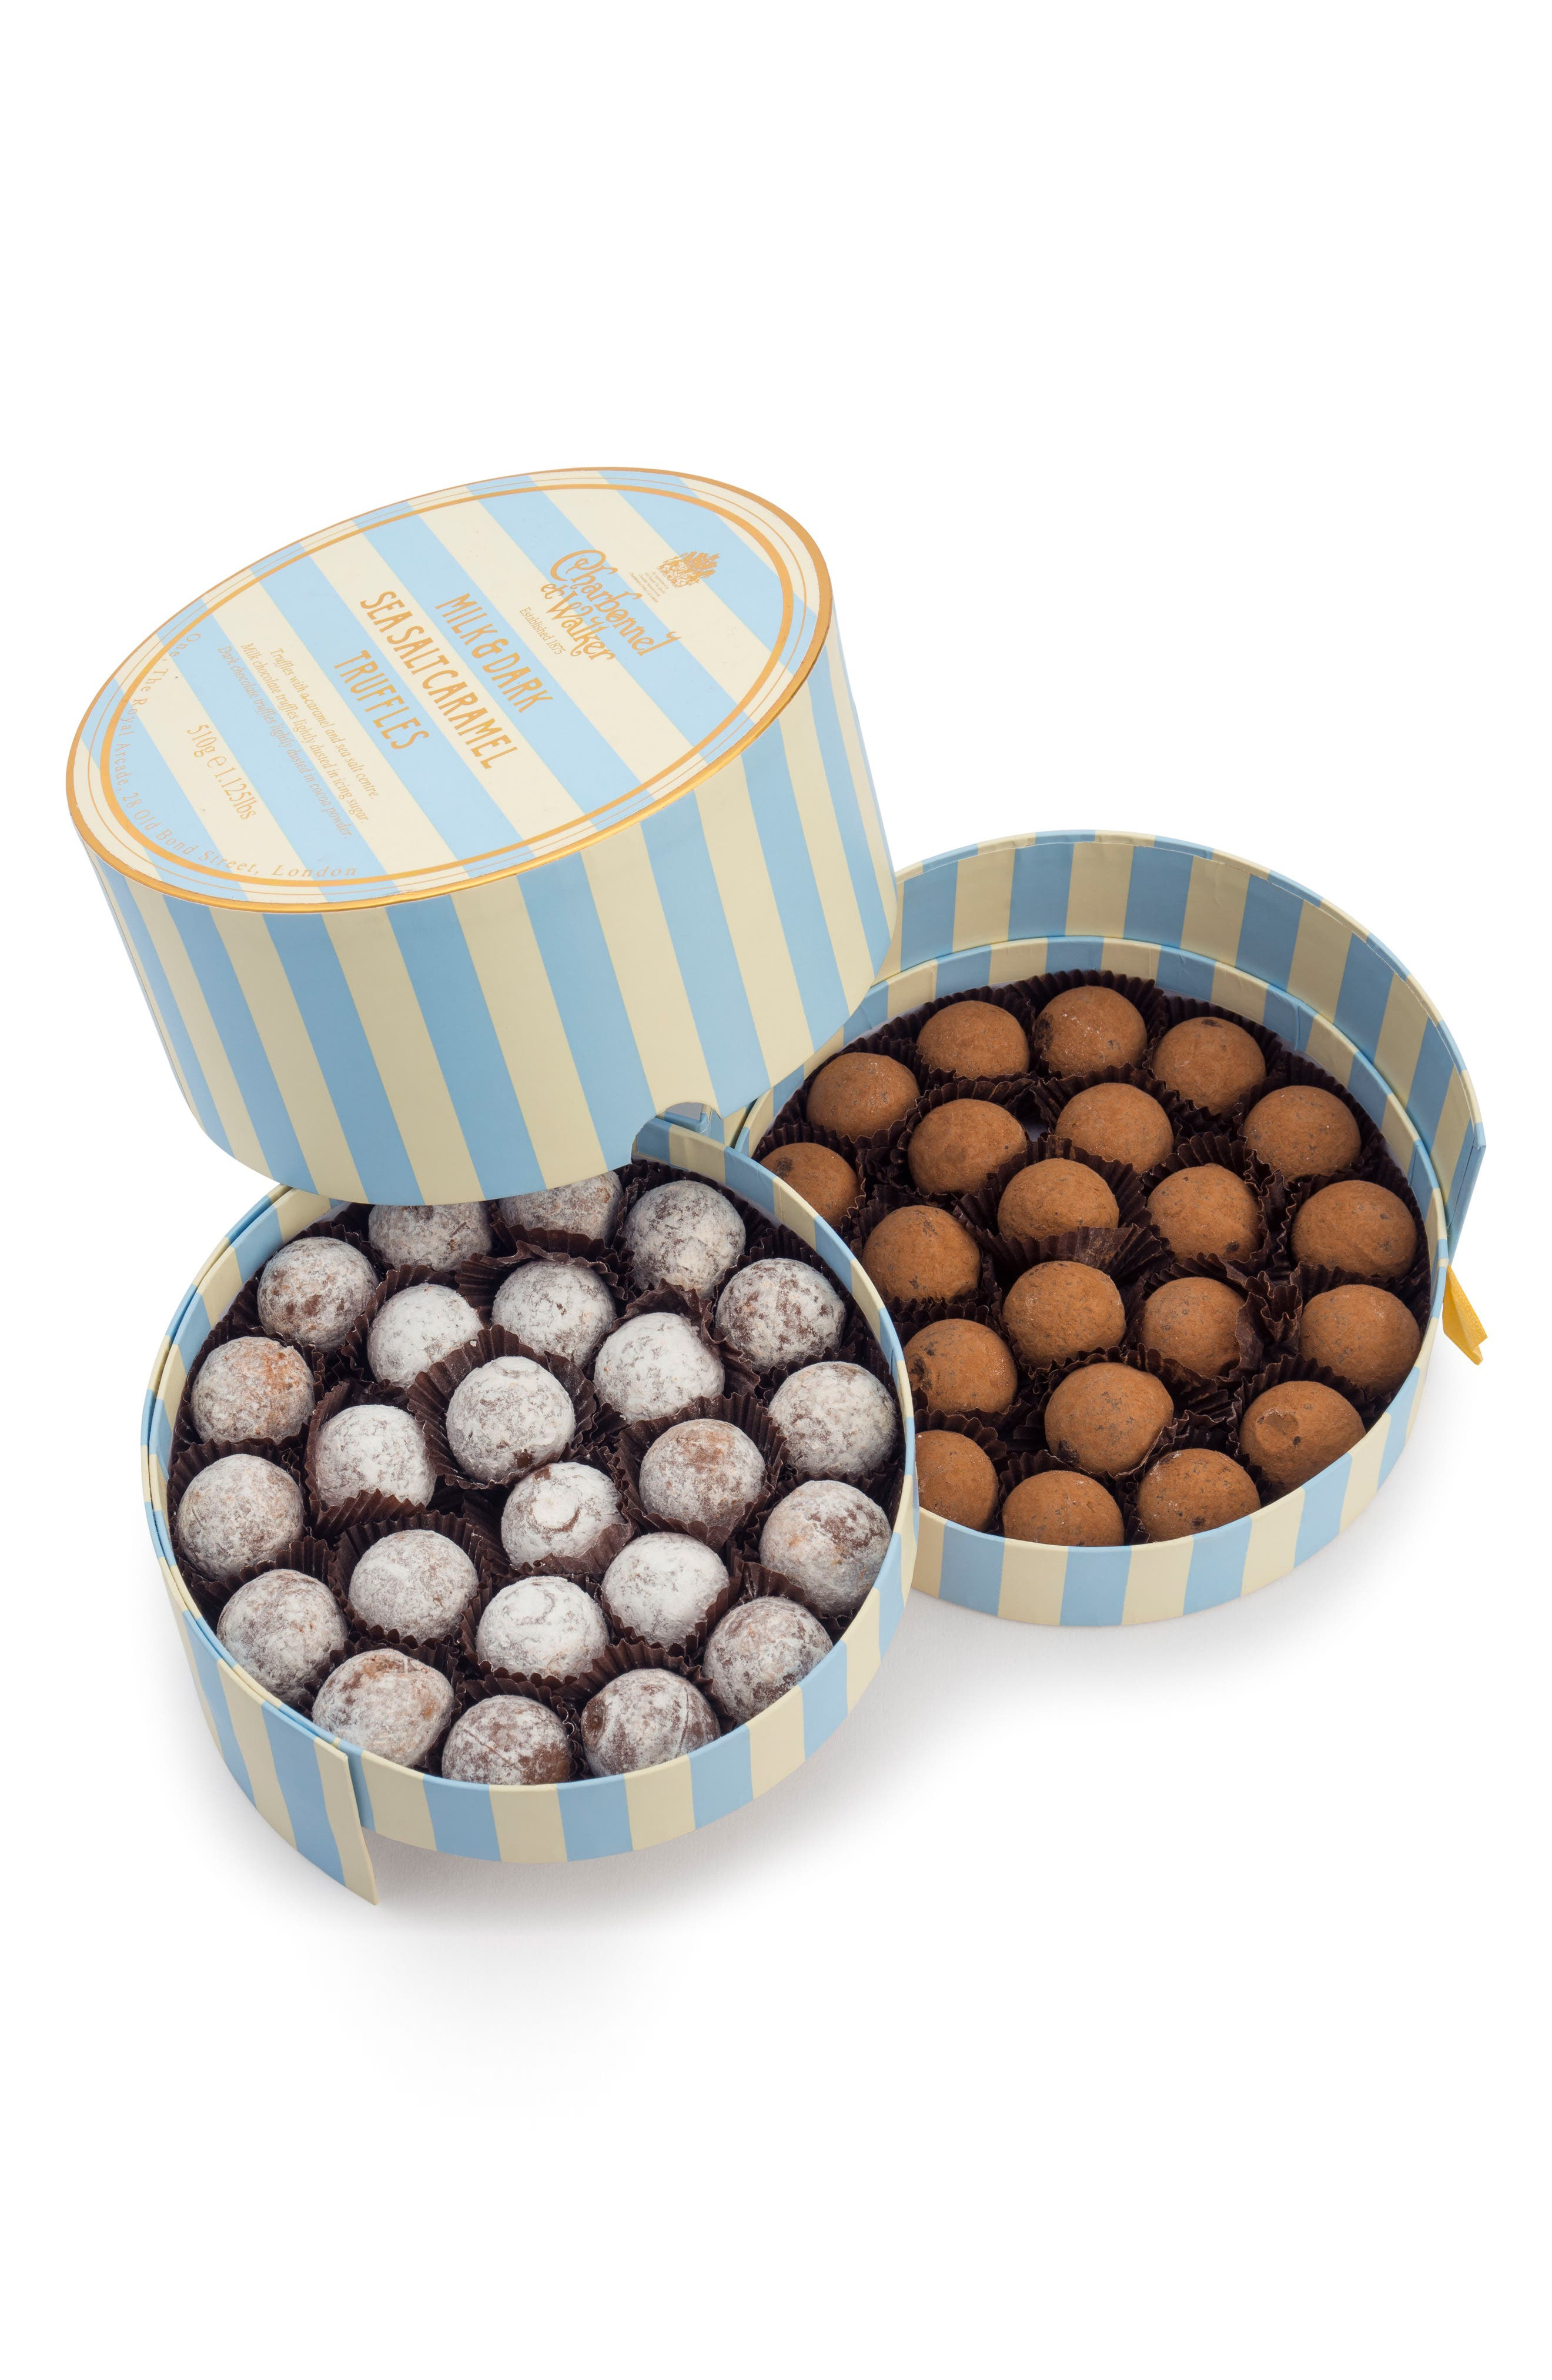 CHARBONNEL ET WALKER Flavored Chocolate Truffles in Gift Box, Main, color, 400